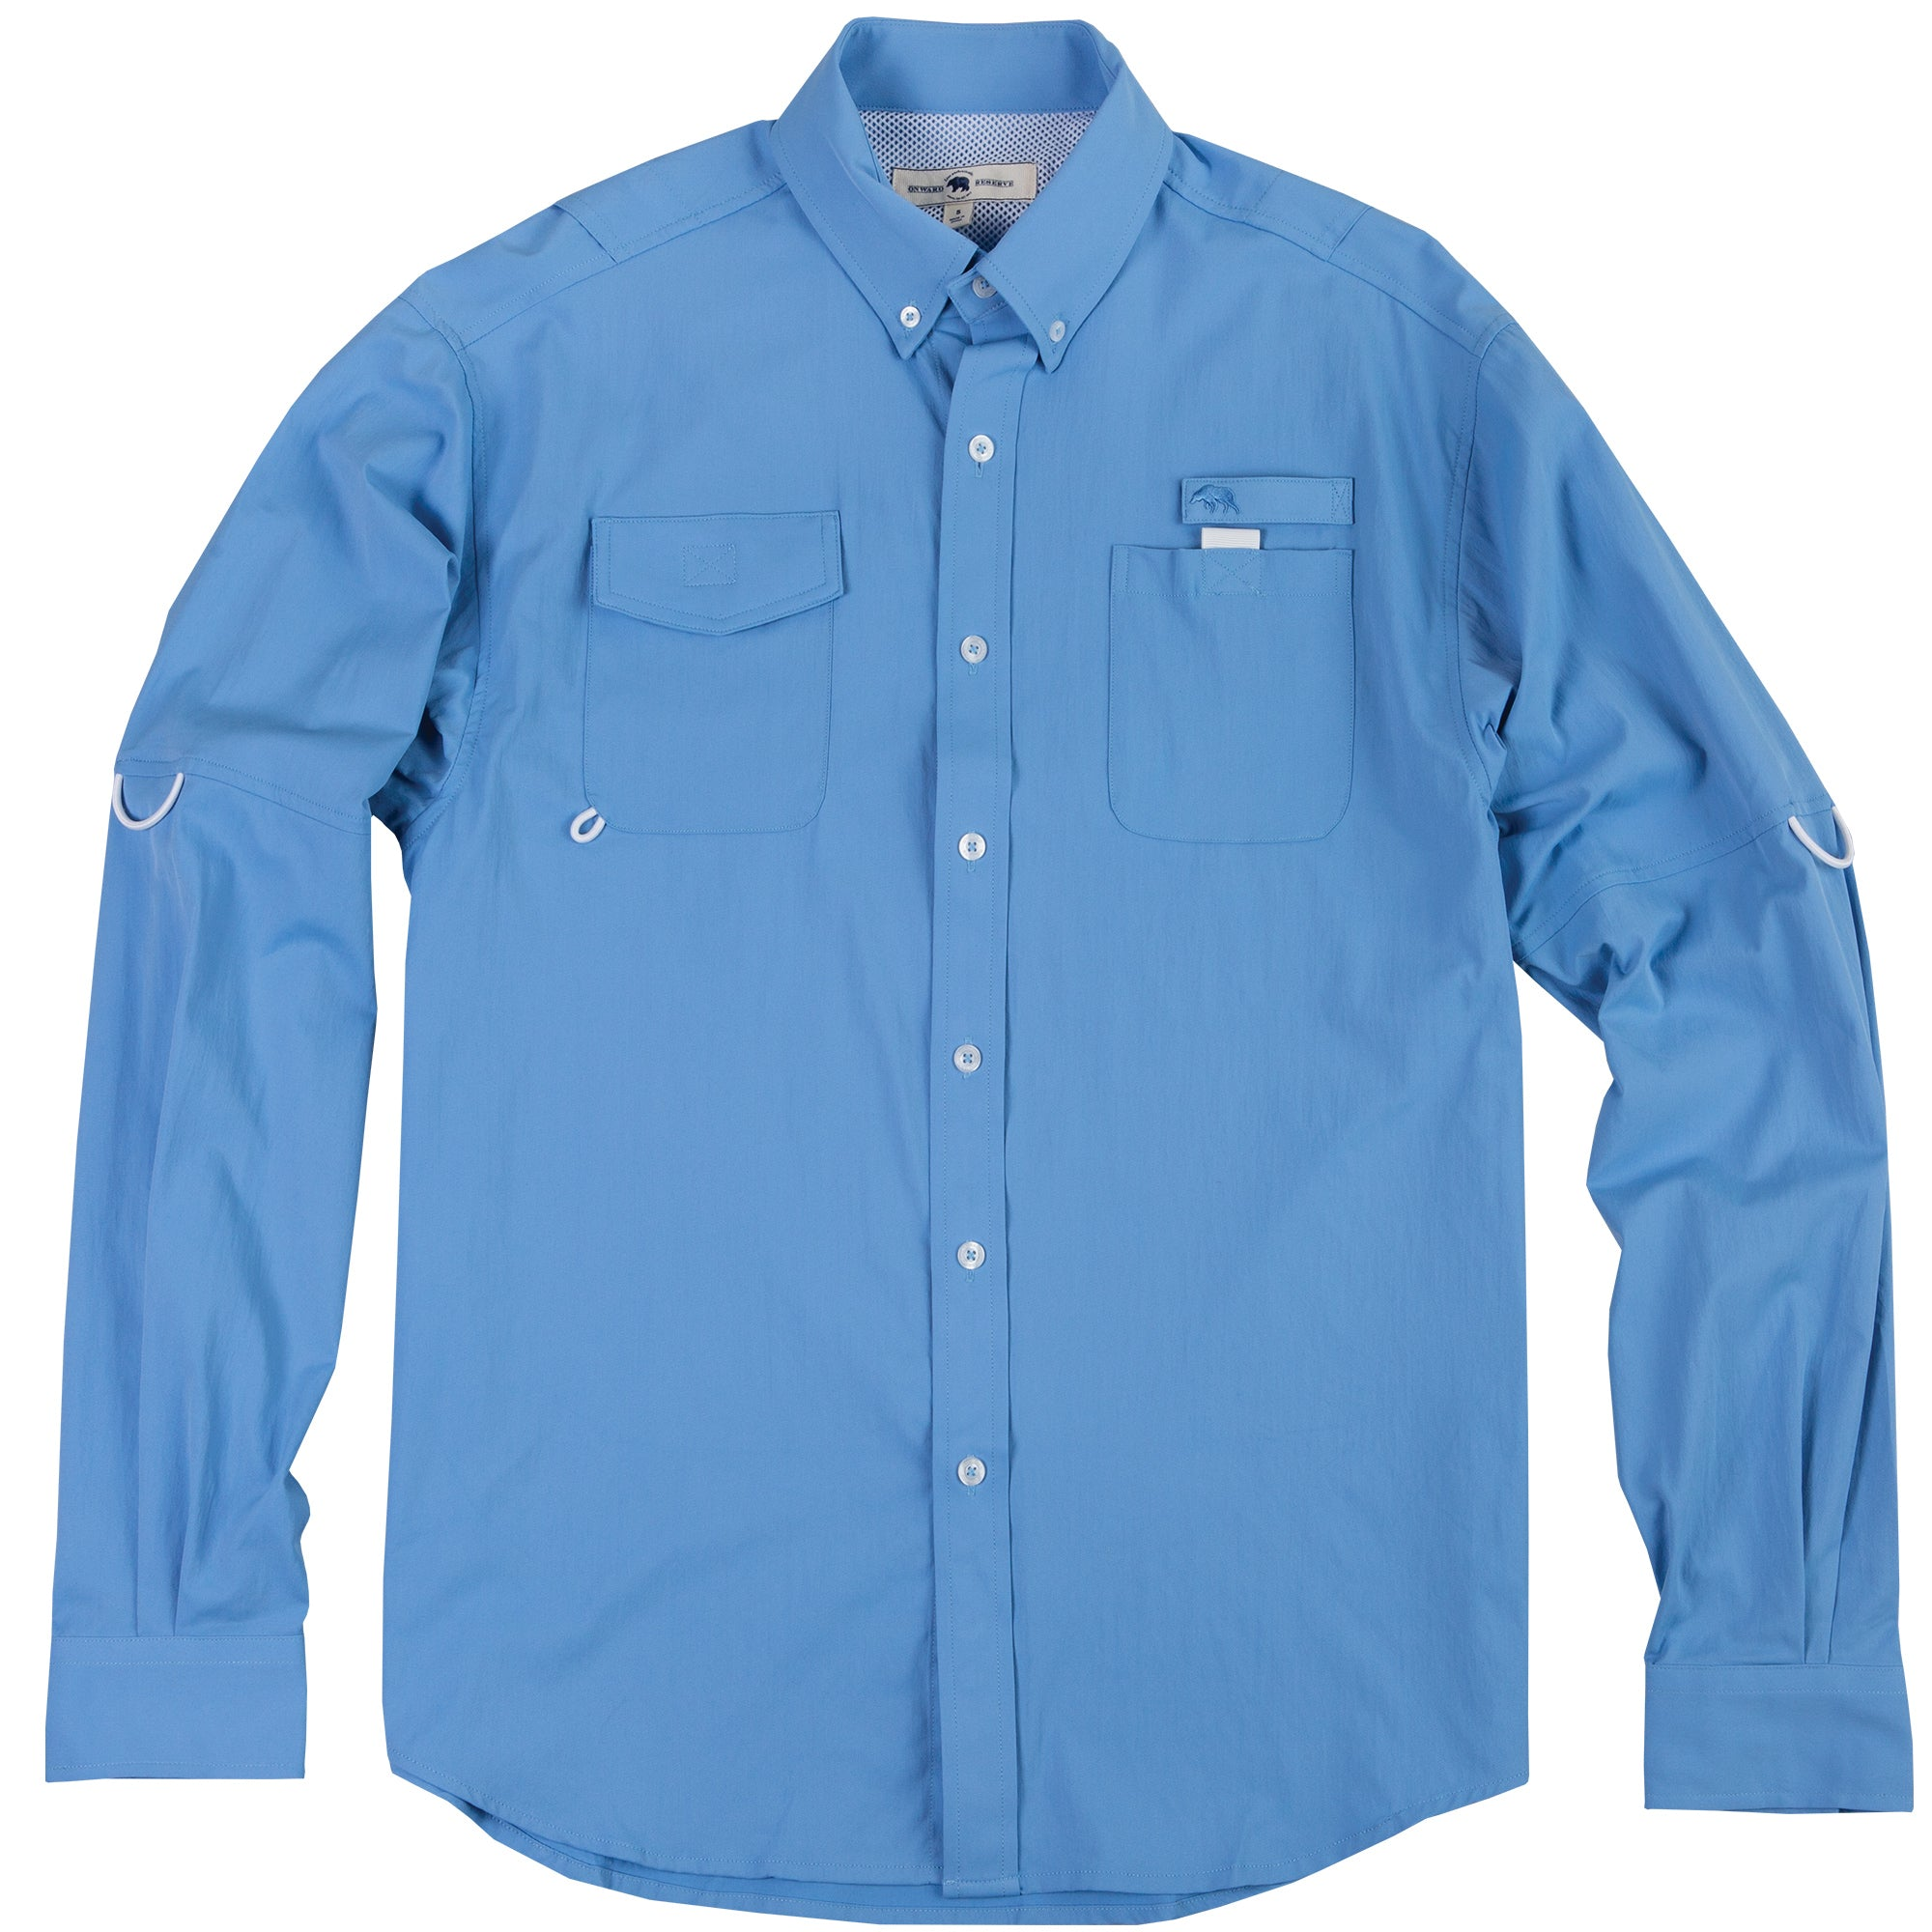 Performance Fishing Shirt - Solid Blue - OnwardReserve